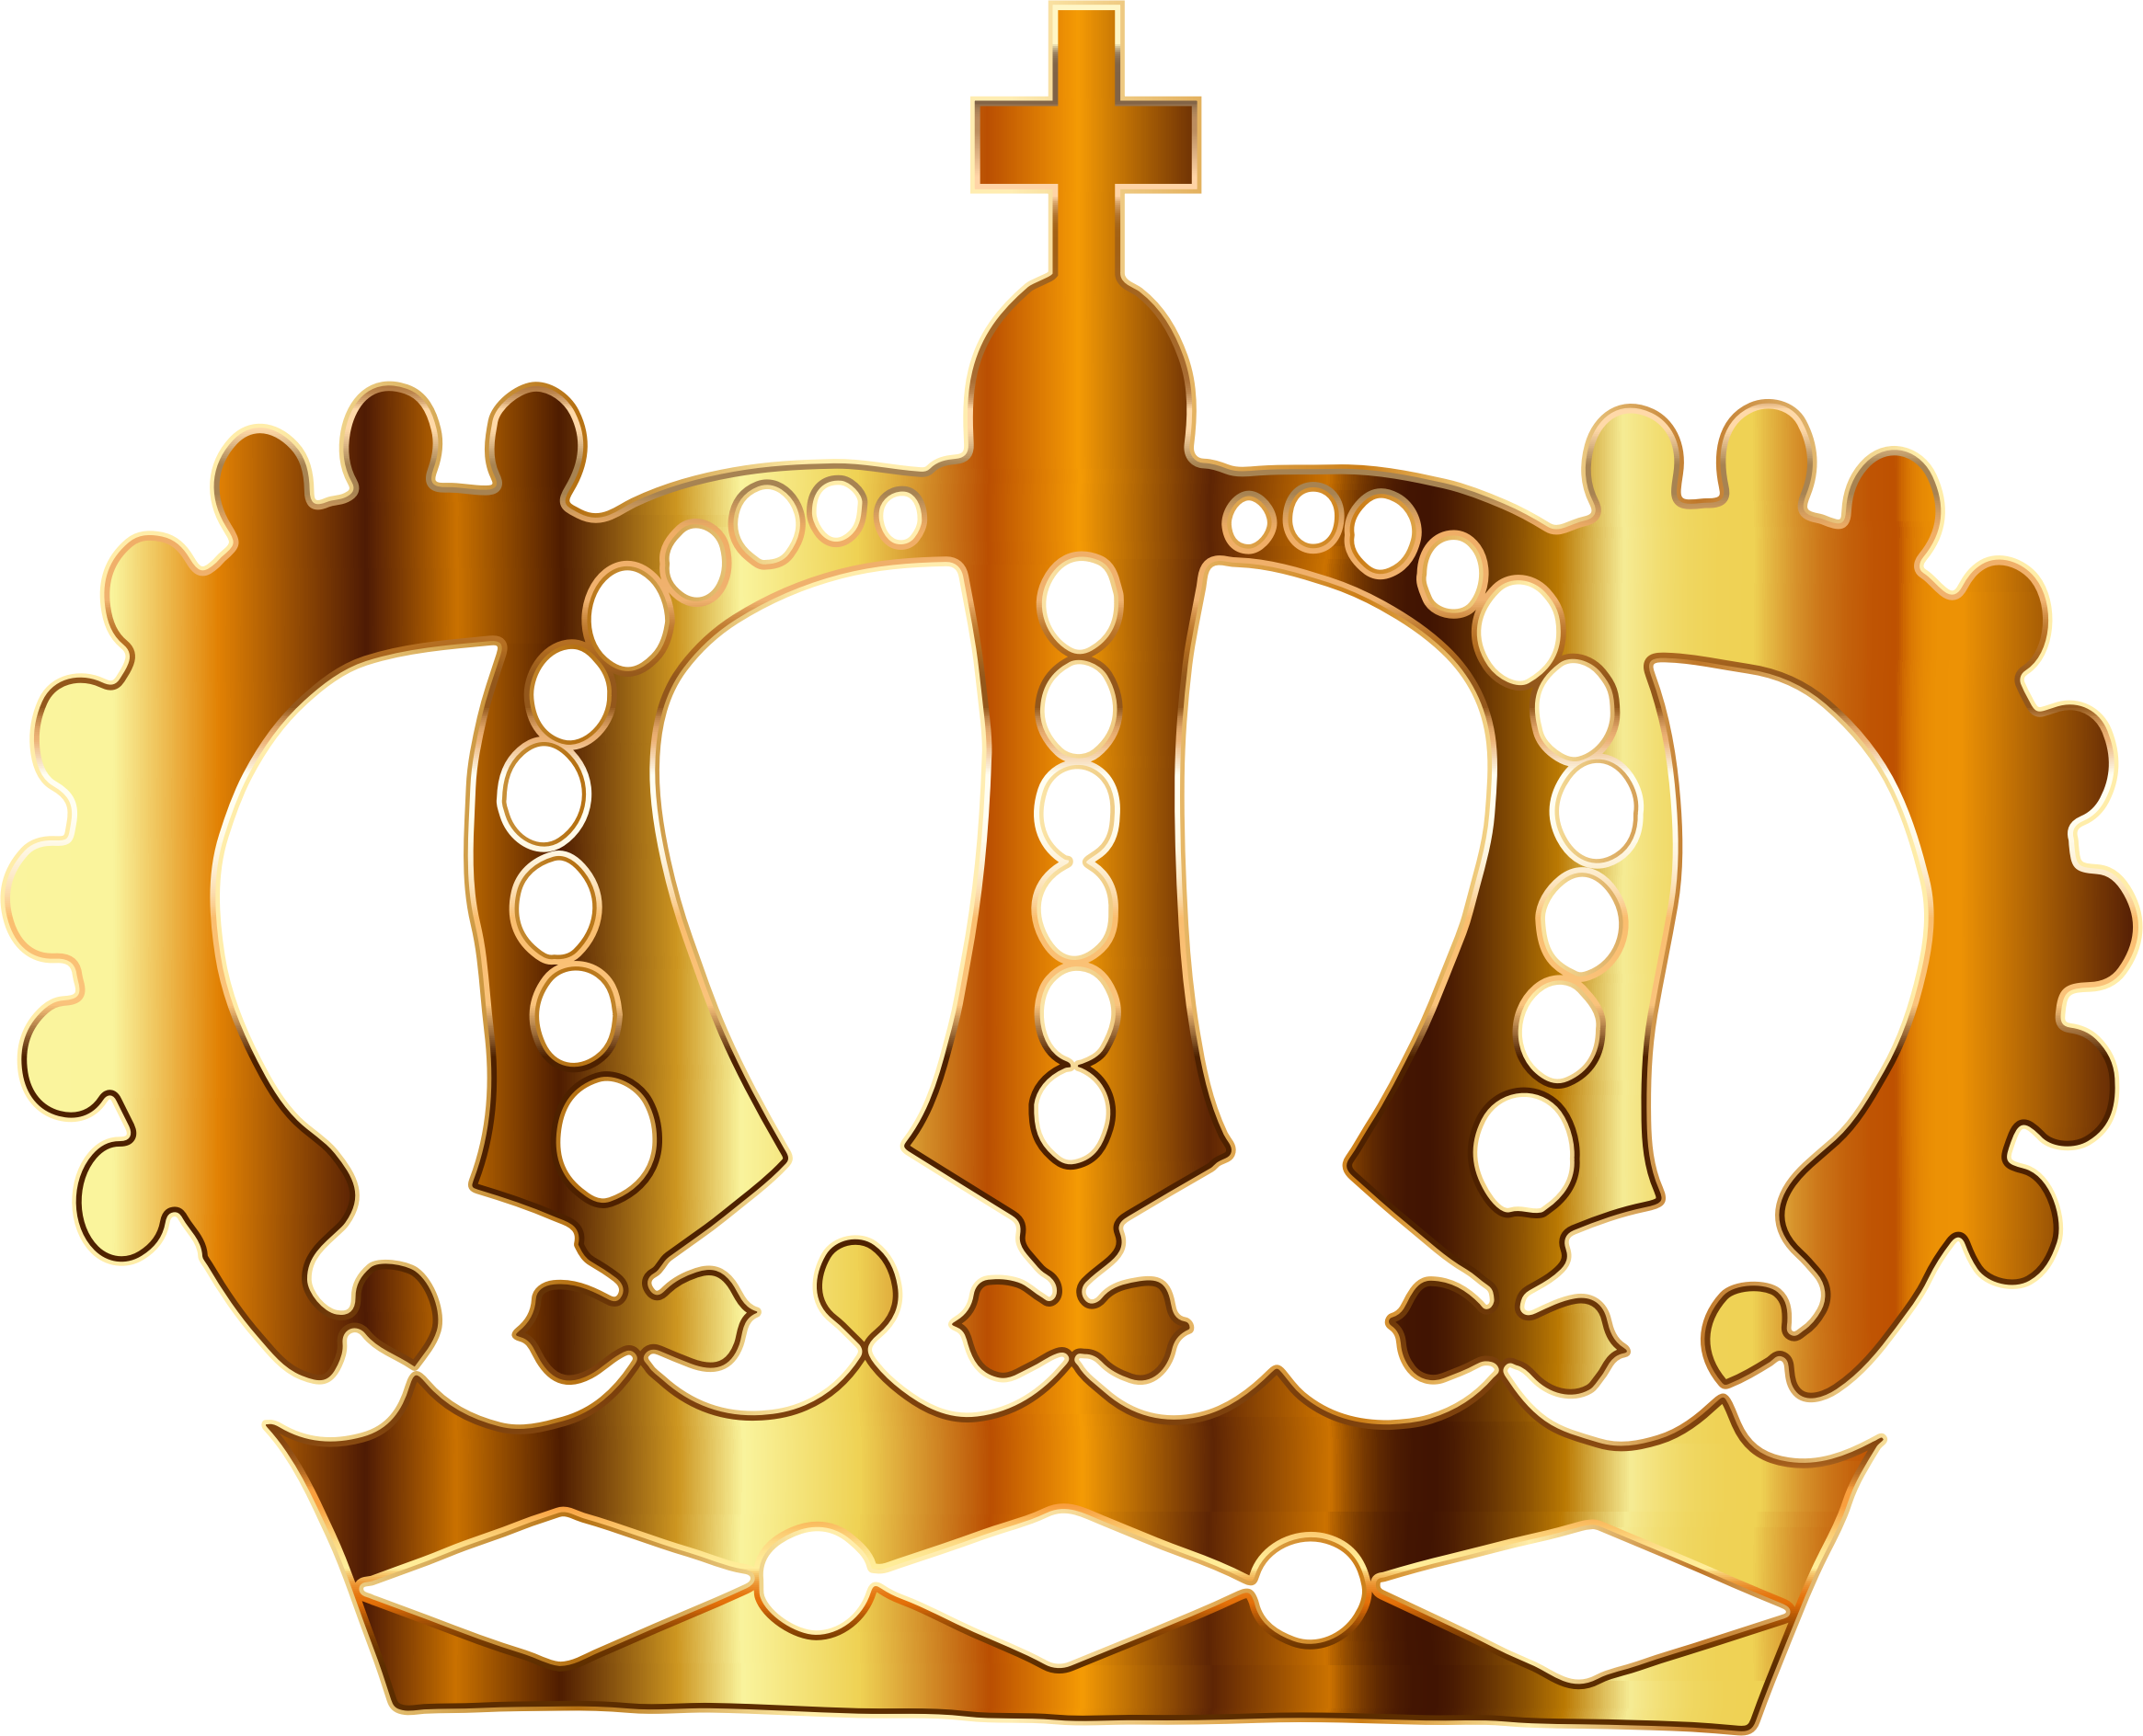 Royal queen crown clipart vector black and white King crown clipart no background - ClipartFest vector black and white